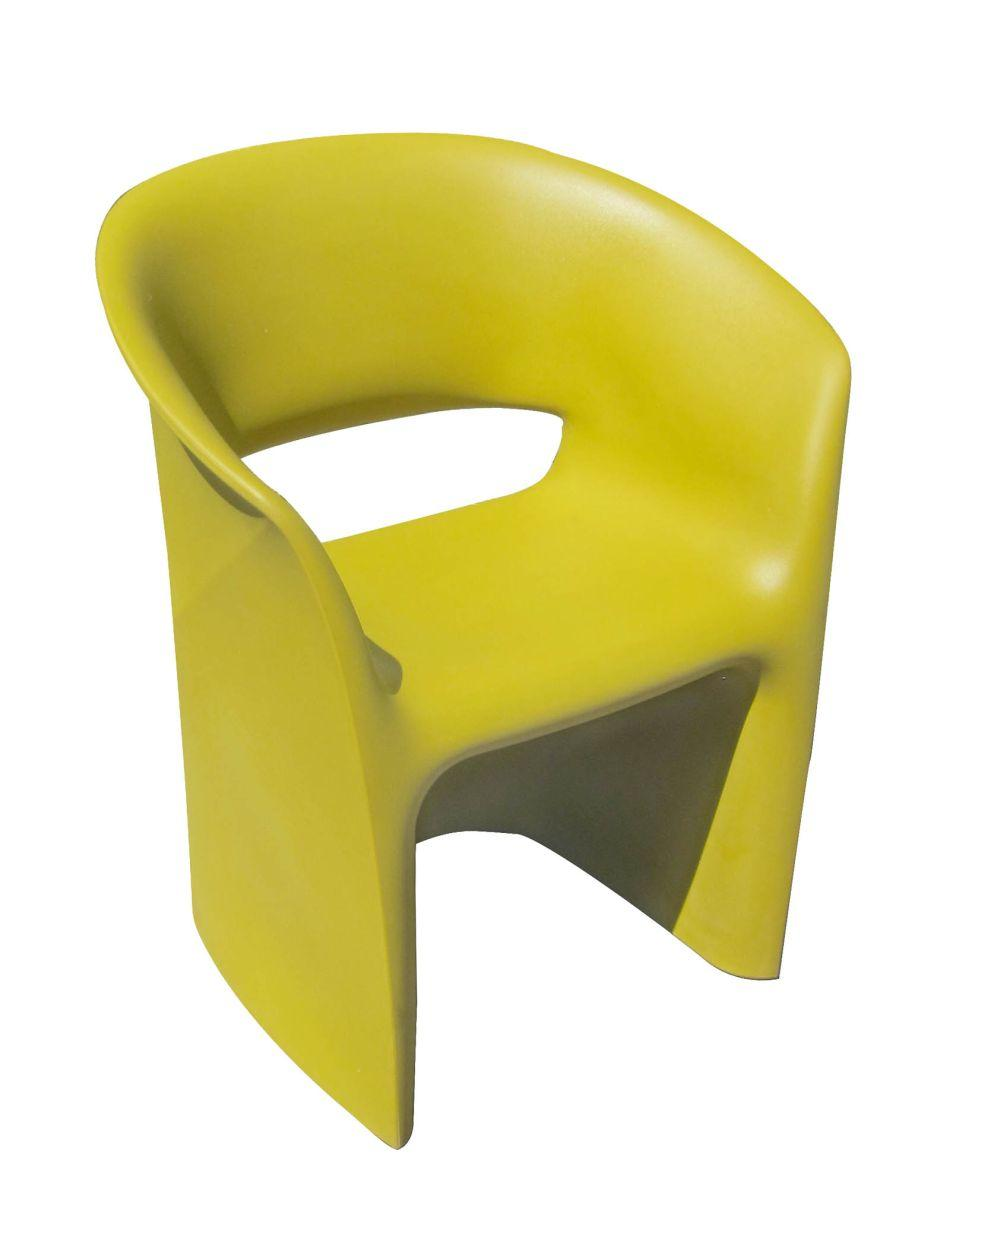 """Kuark chair"" designed by Kastel"